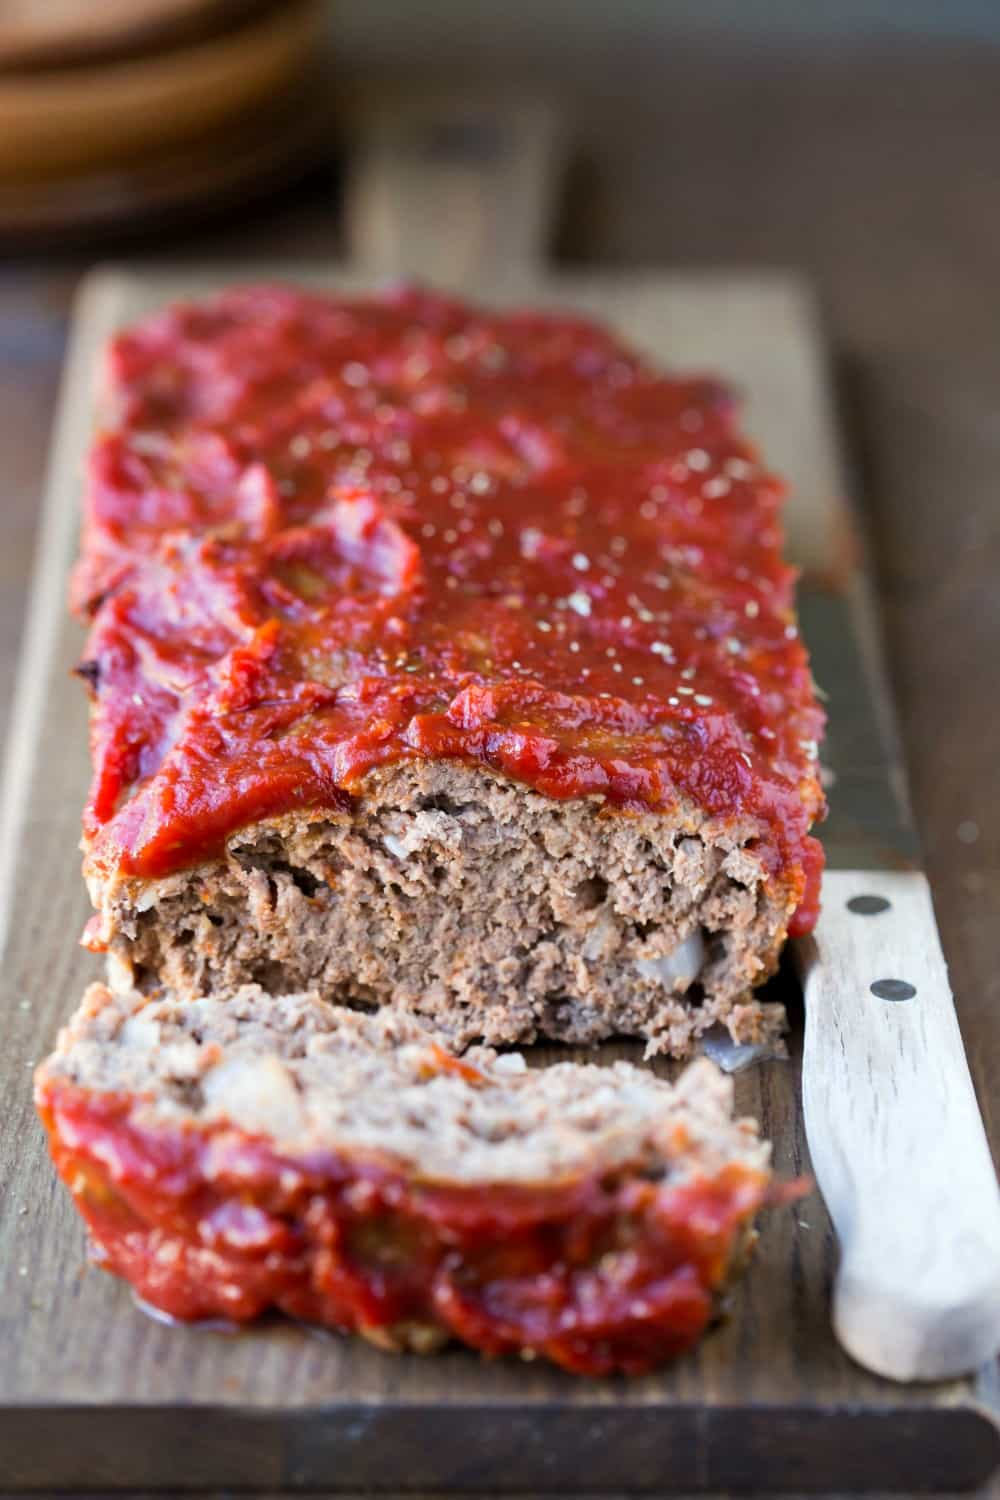 Meatloaf covered with chili sauce next to a wooden knife